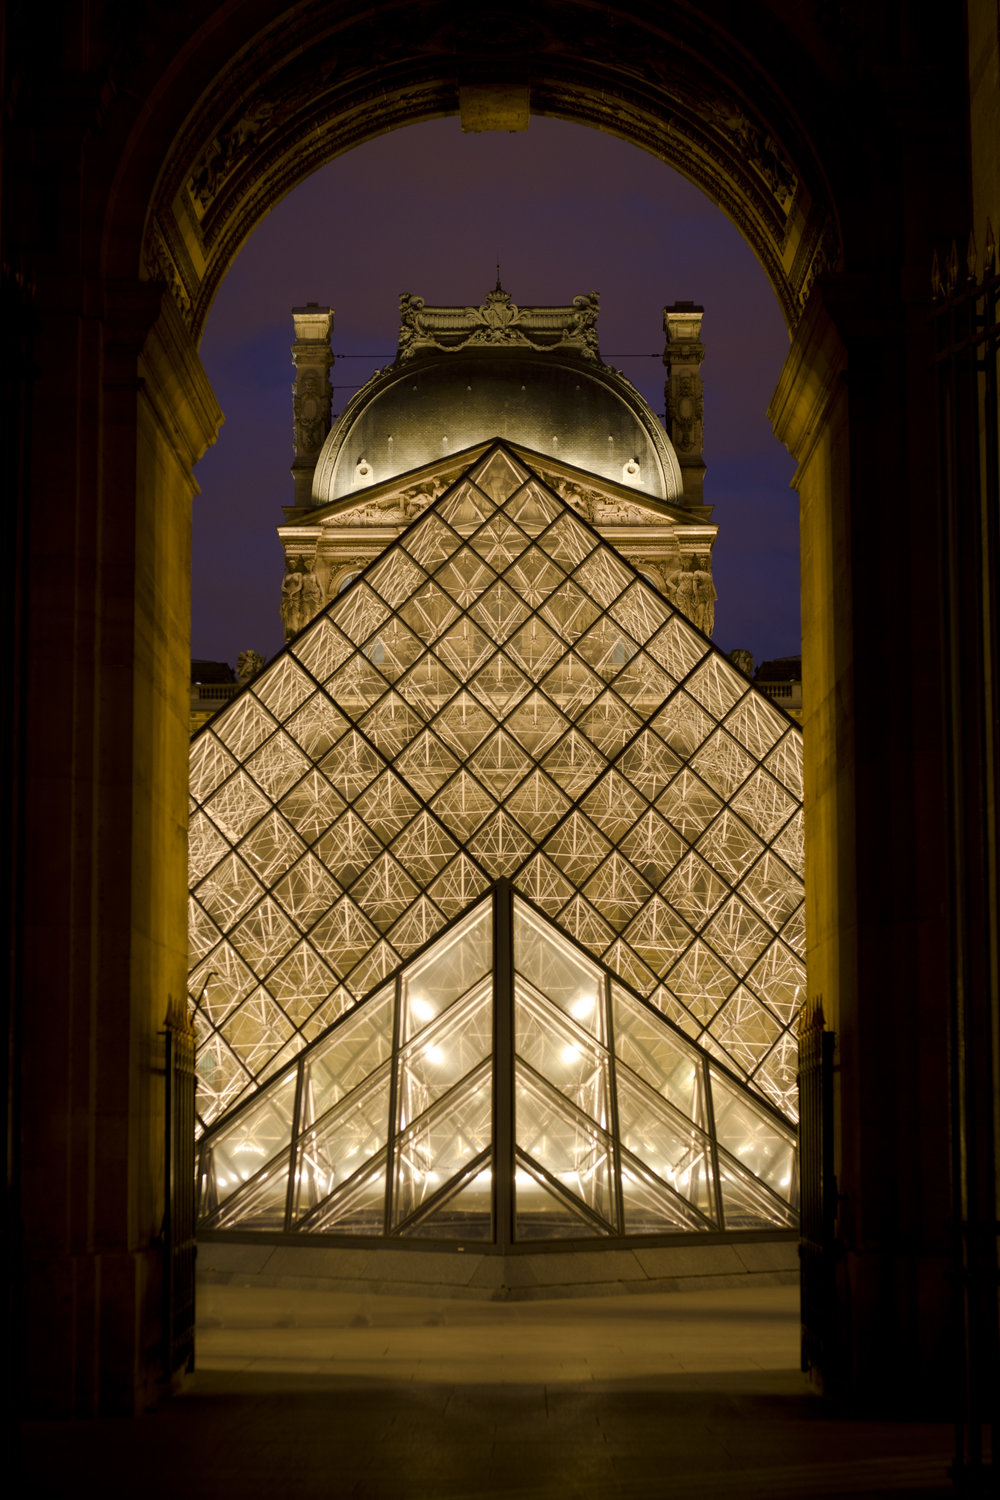 The Pyramid at the Louvre is perfectly framed by the archway. Photo by Alexander J.E. Bradley.